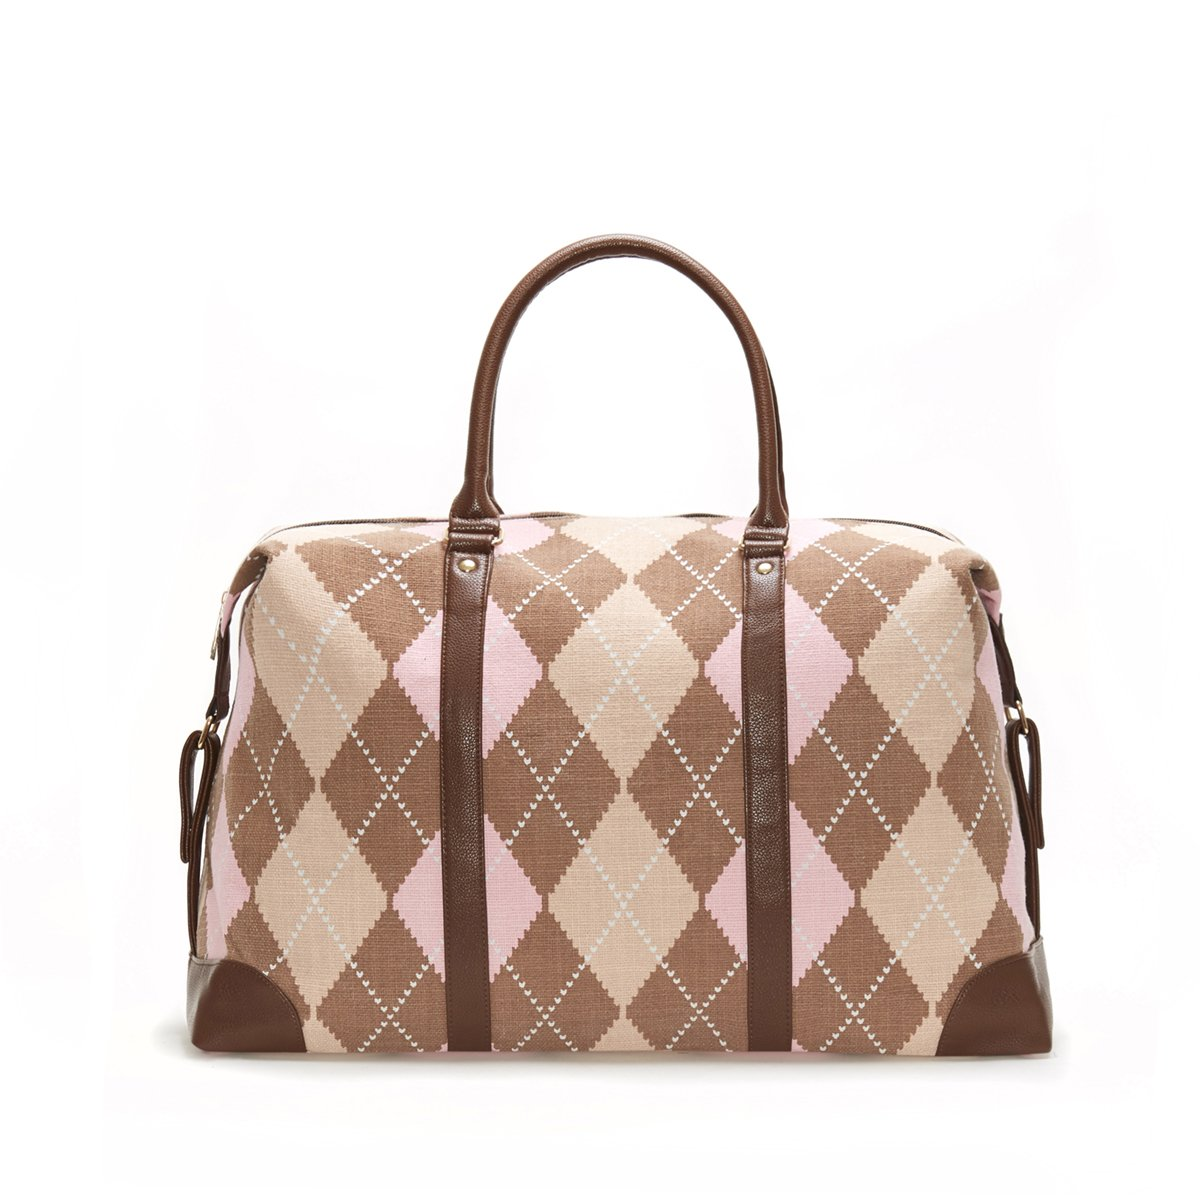 Lulu Dharma Argyle Duffle Bag, Weekender Bag Overnight Travel Tote Bag MSRP $99